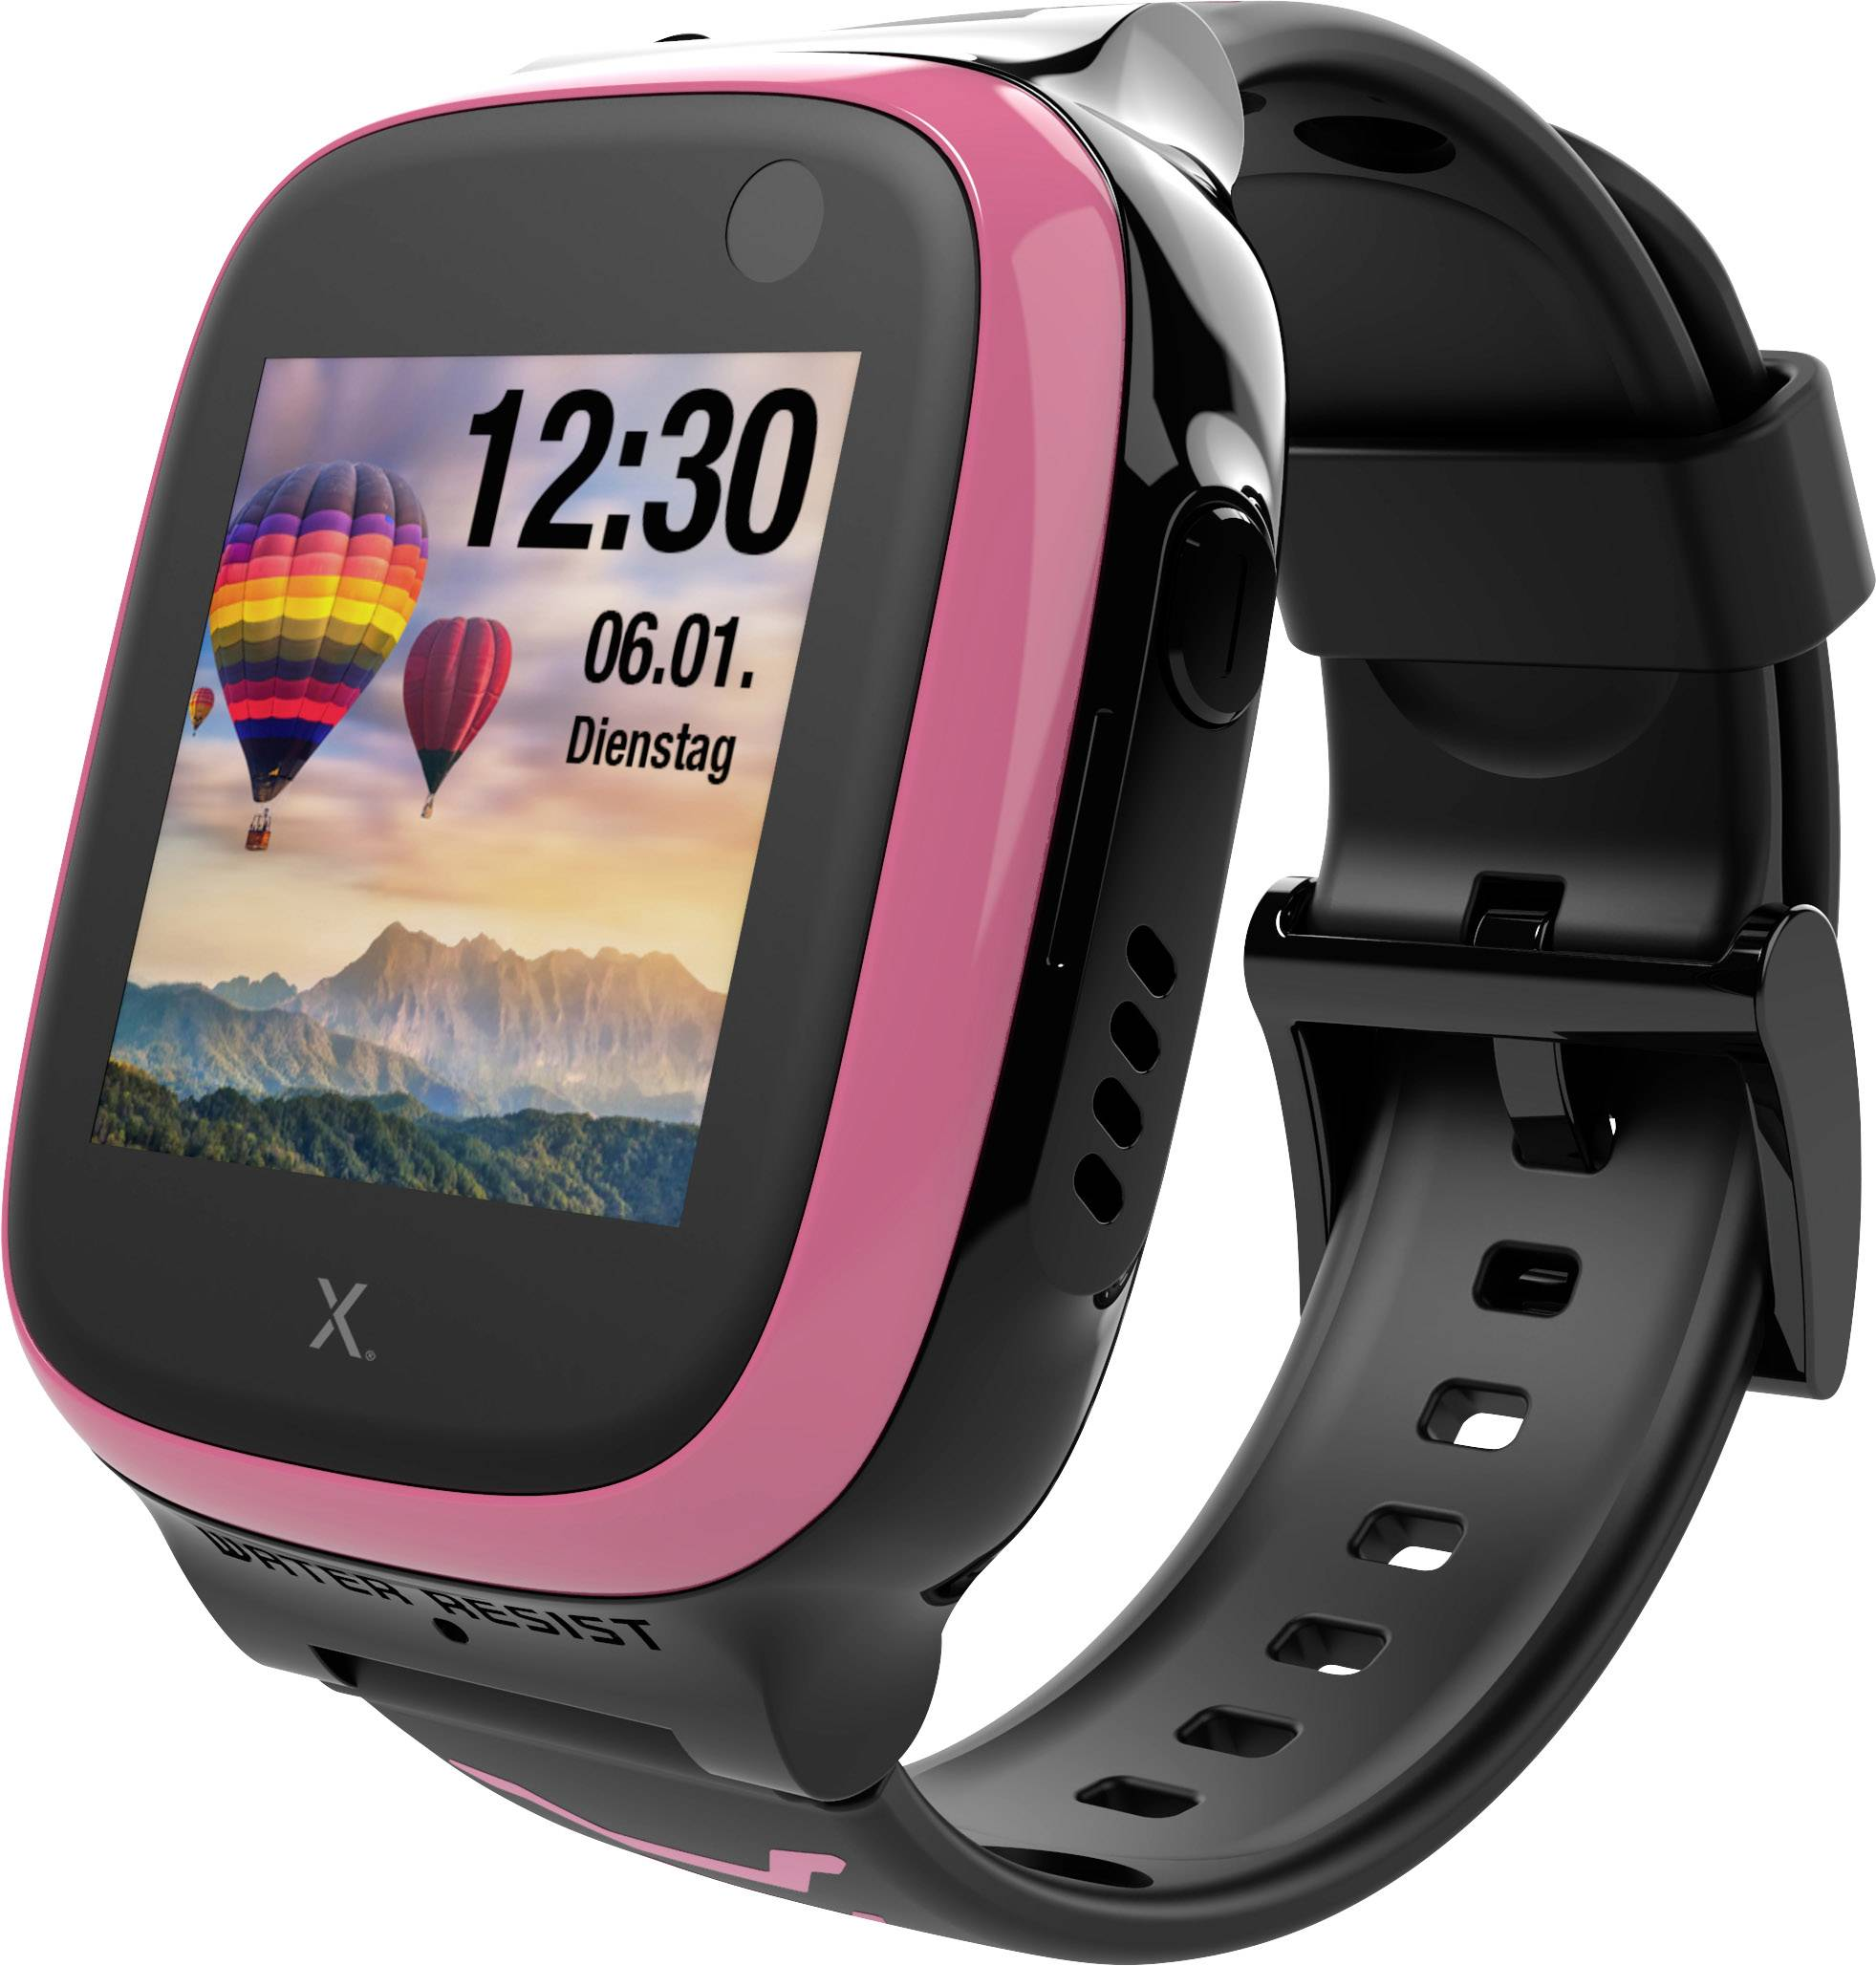 Xplora X5 Play Kids Smartwatch Review